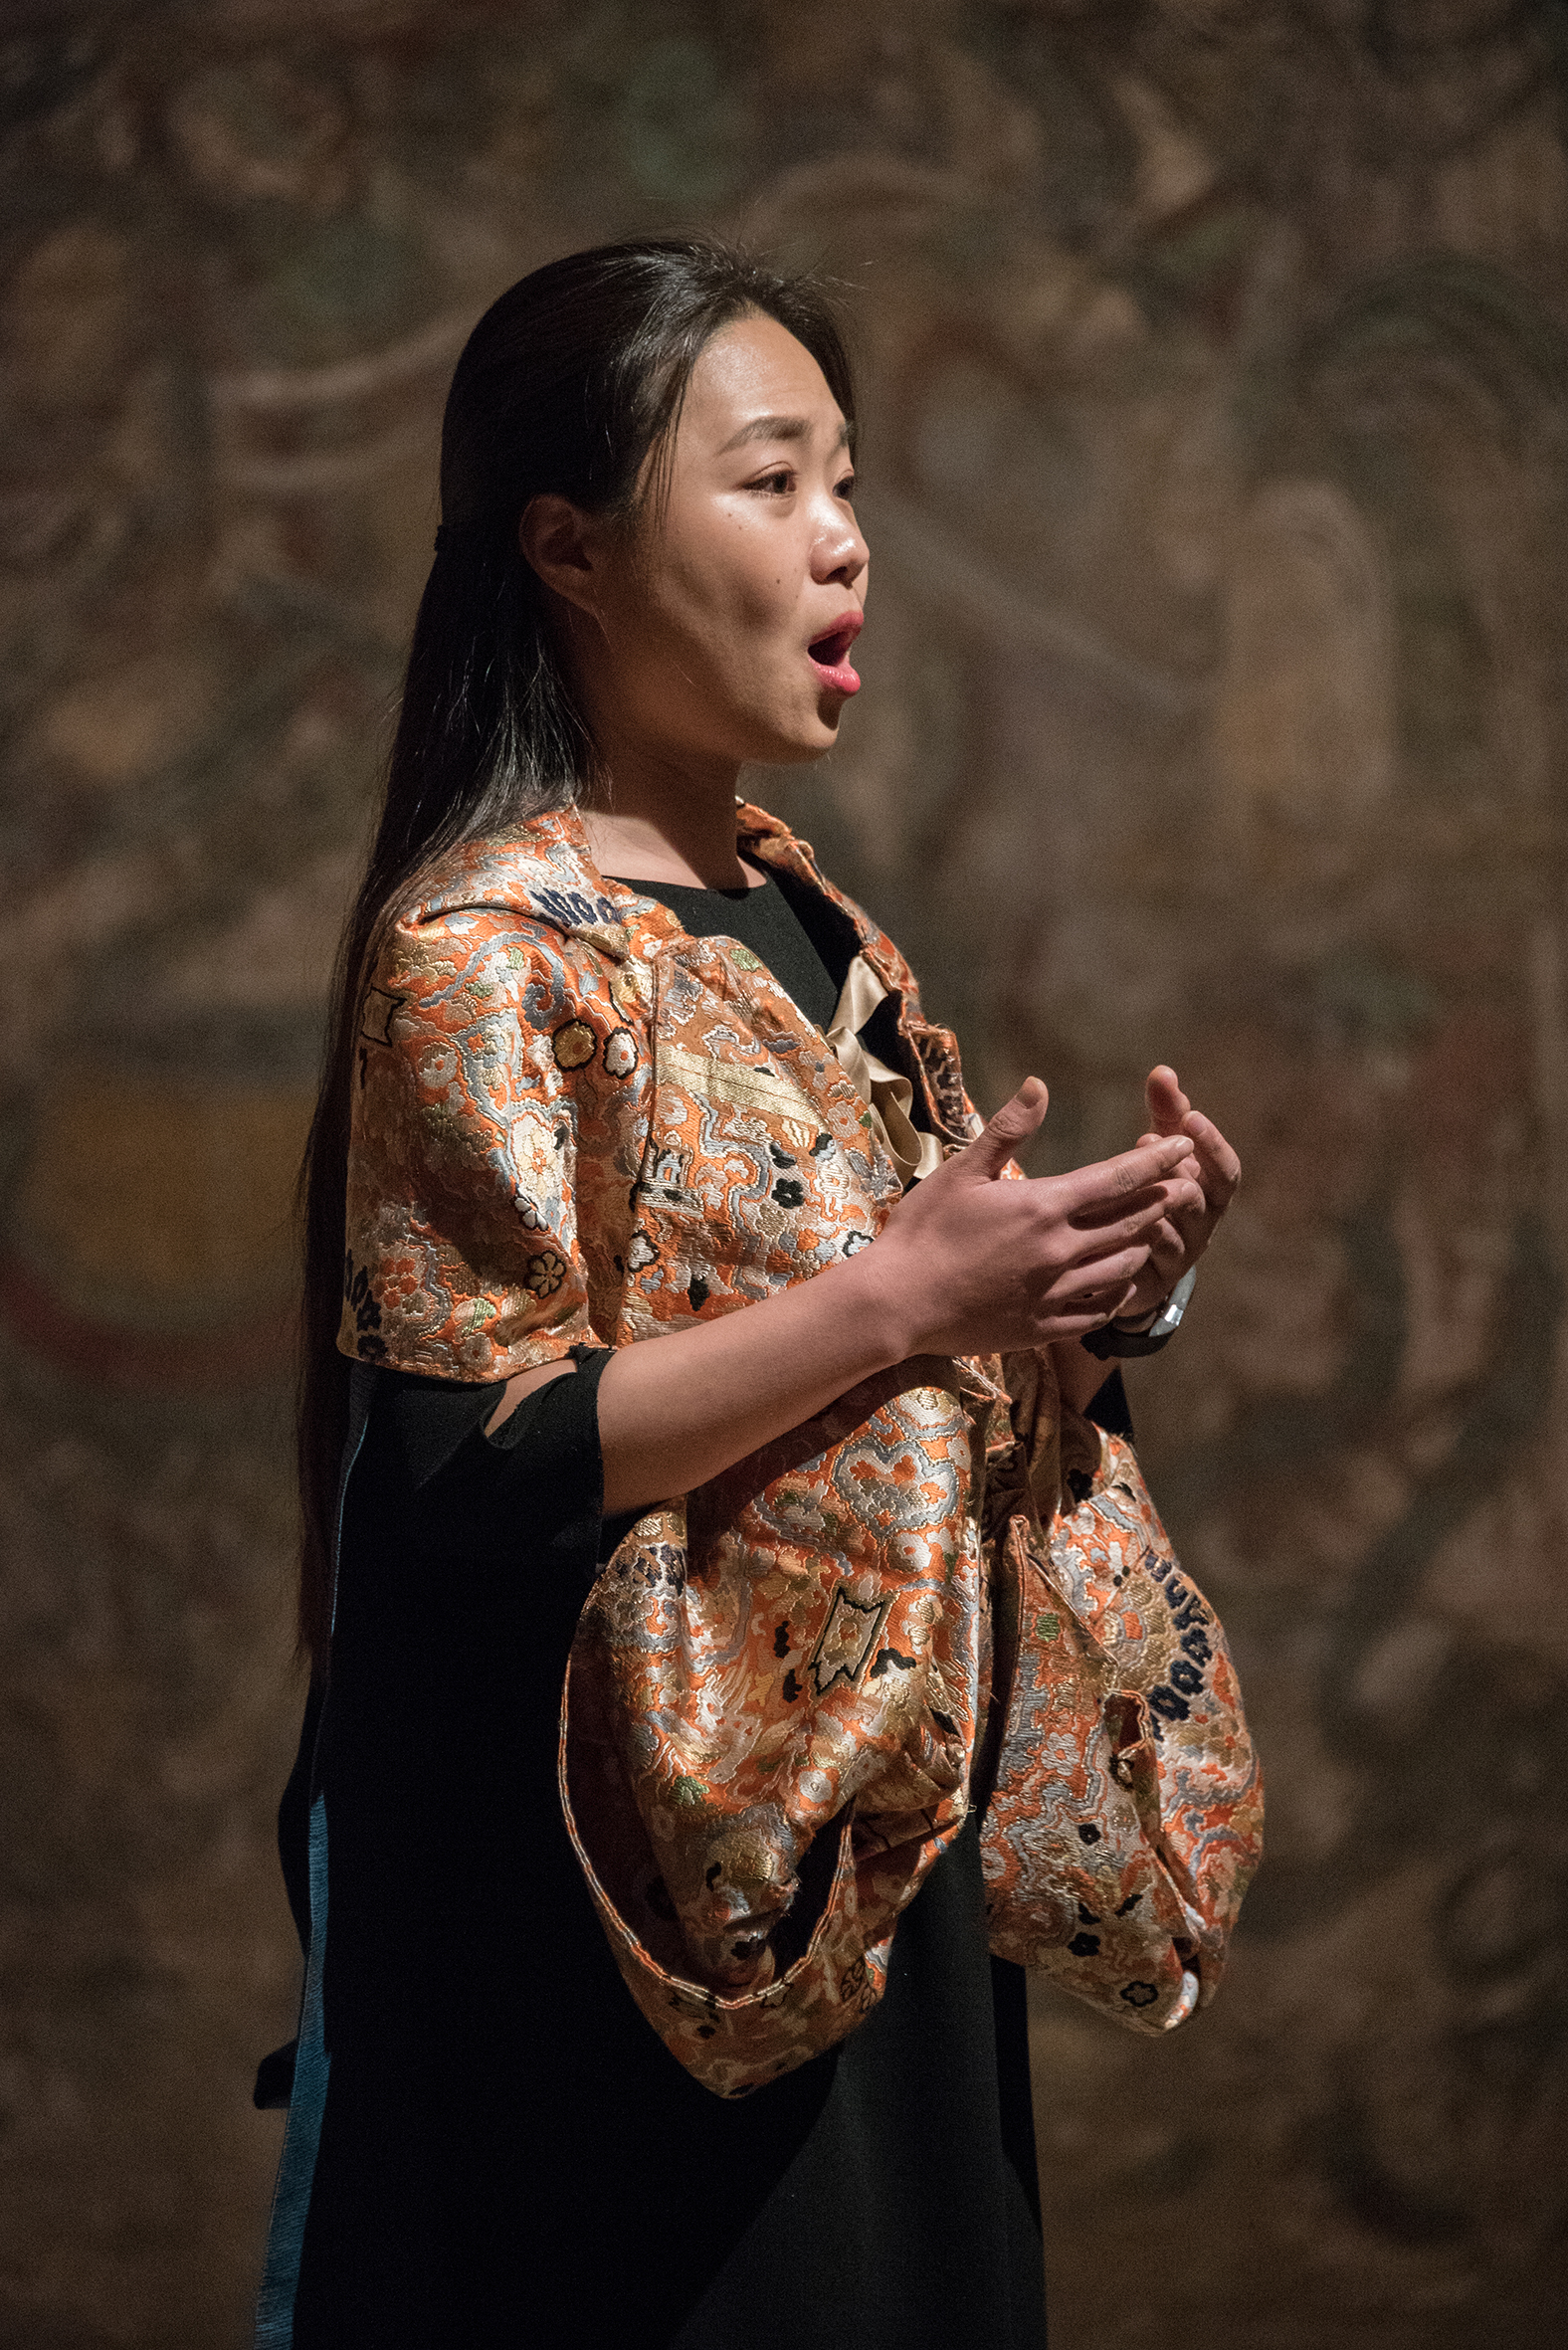 A photograph of a woman singing and wearing a beautiful robe